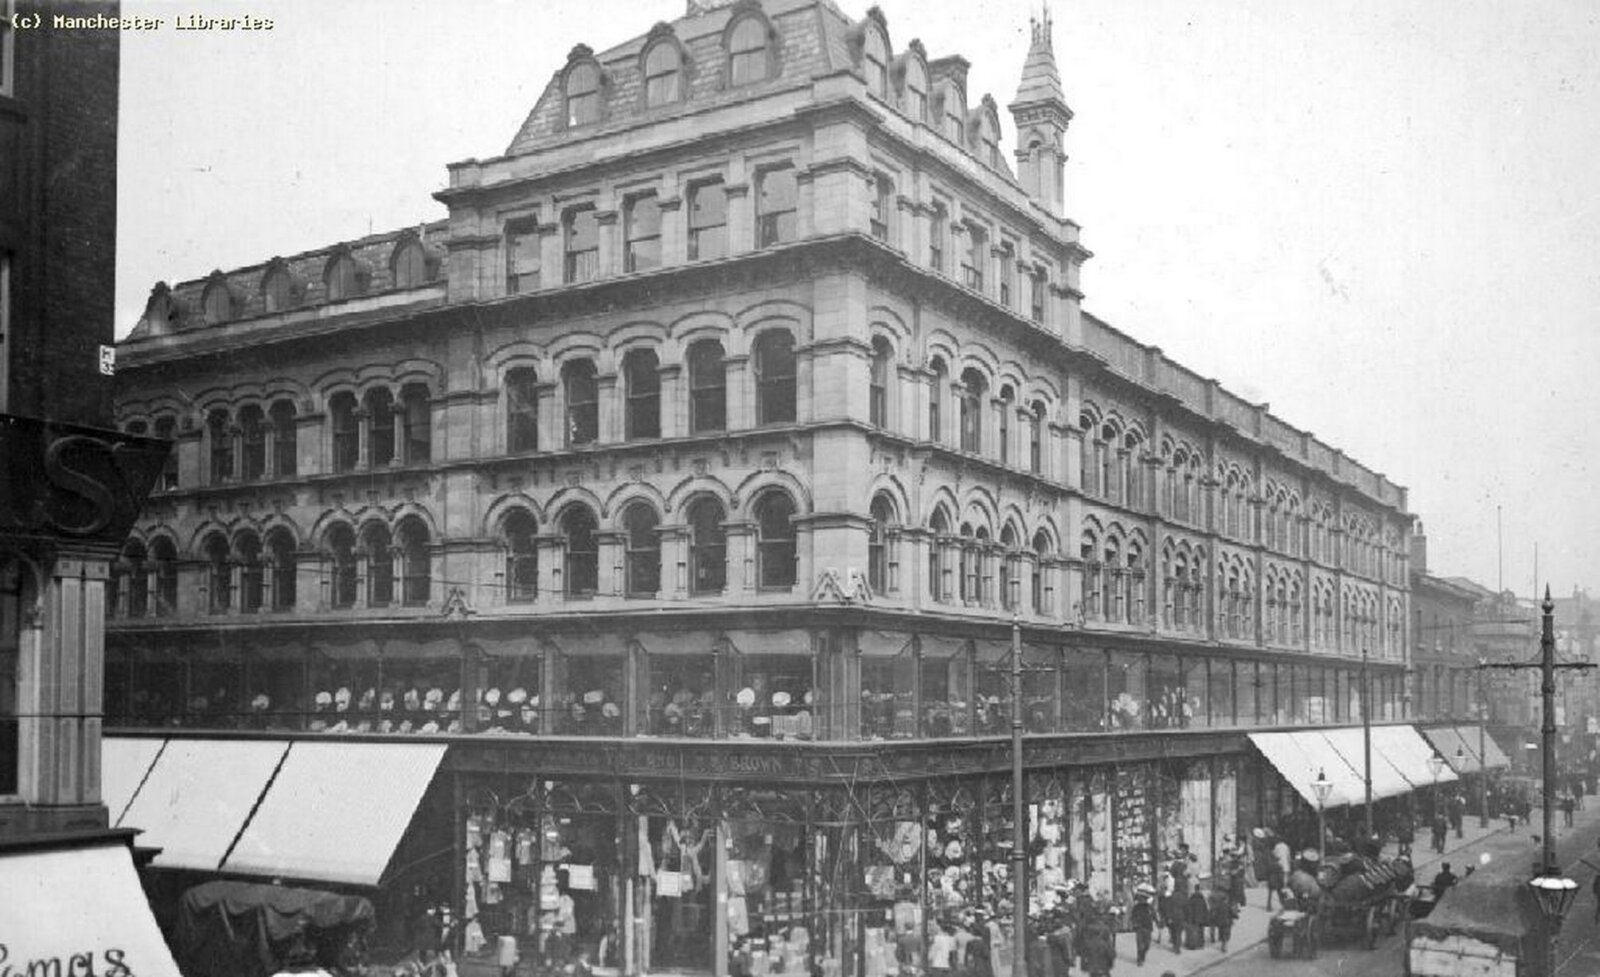 The history behind Affleck's Palace: The indie Northern Quarter shopping hub, The Manc